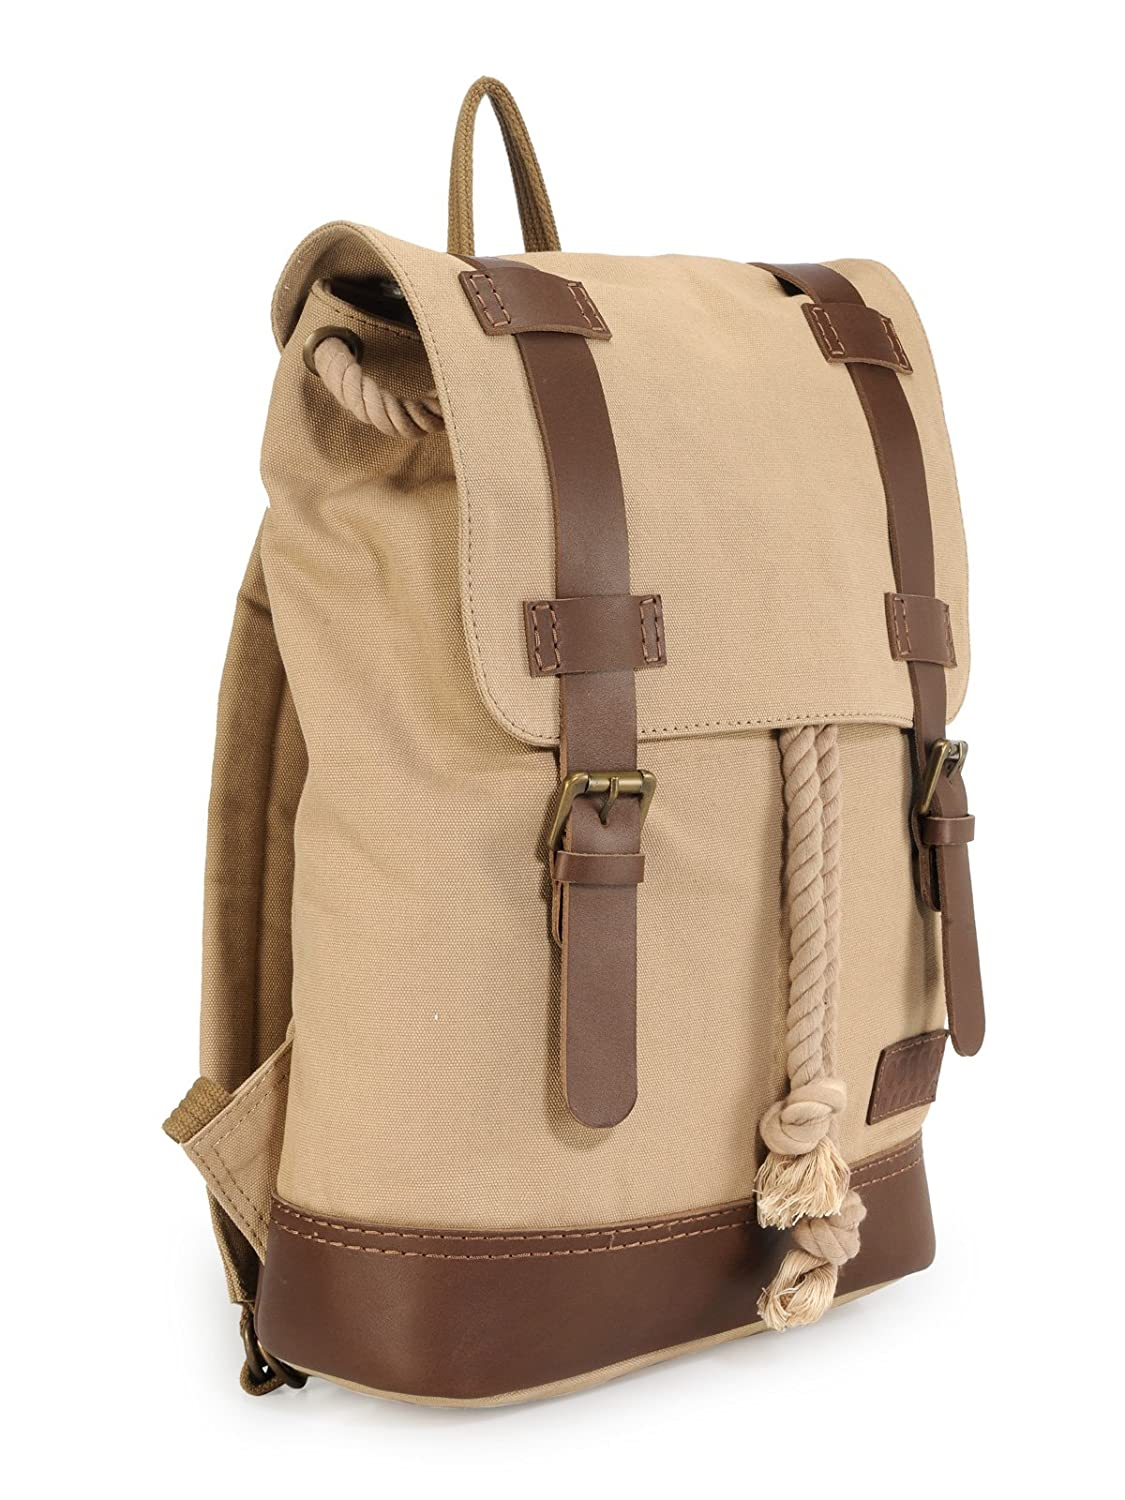 Phive Rivers Leather Backpack Khaki